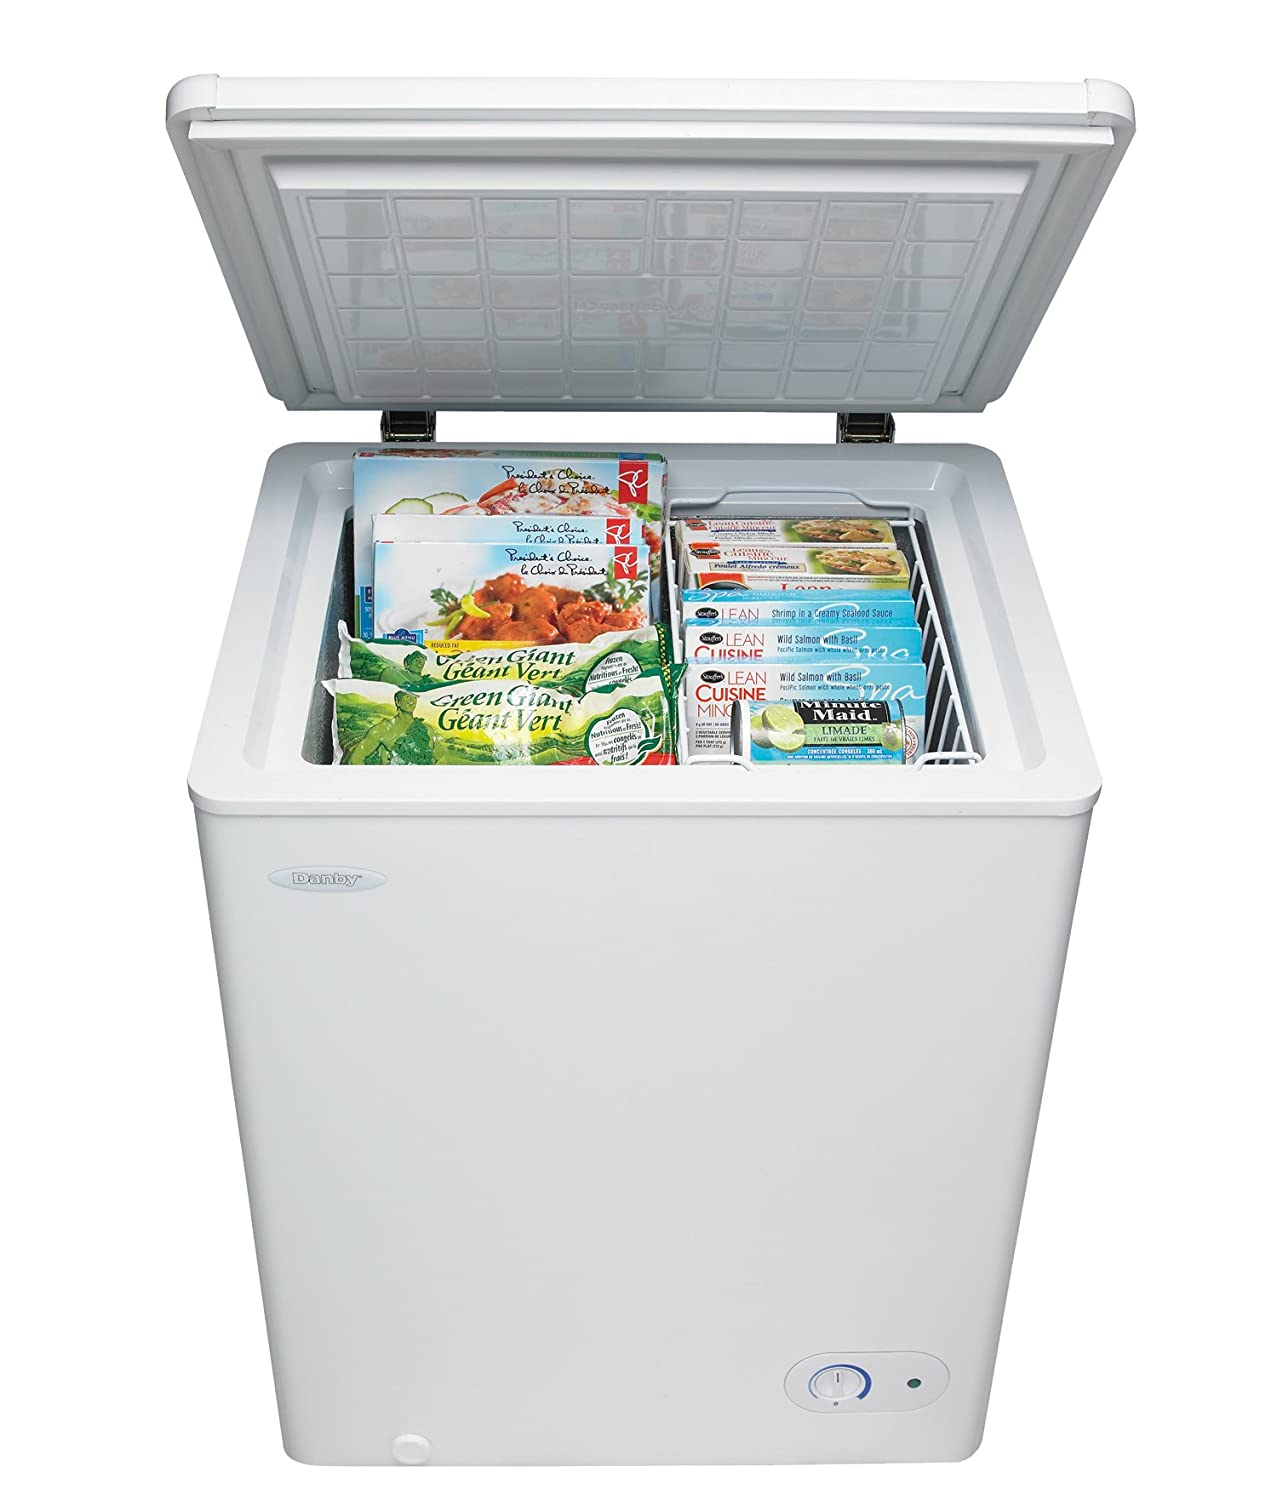 Danby DCF038A1WDB1 Chest Freezer, 3.8 Cubic Feet, White: Amazon.ca: Home U0026  Kitchen